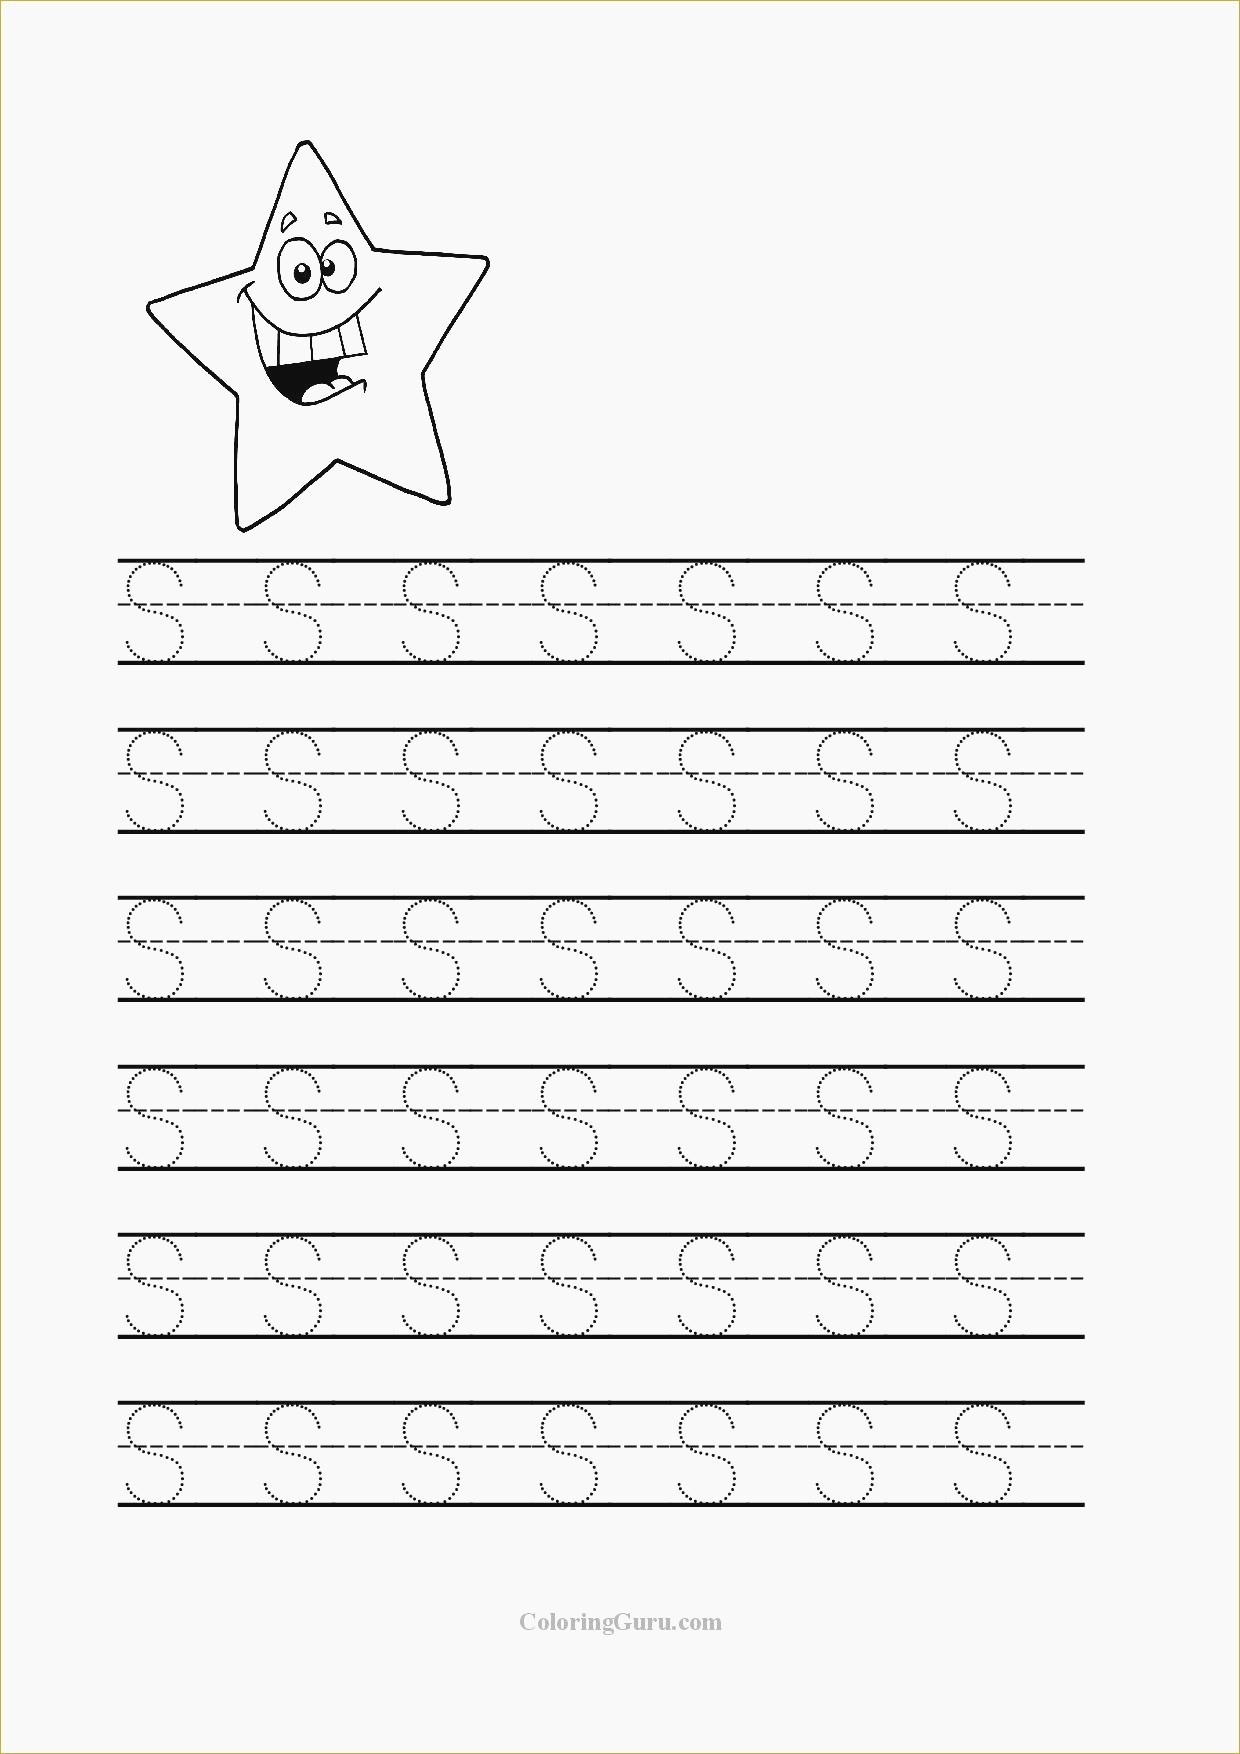 Printable Tracing Paper Beautiful Free Name Tracing Worksheets For - Free Printable Name Tracing Worksheets